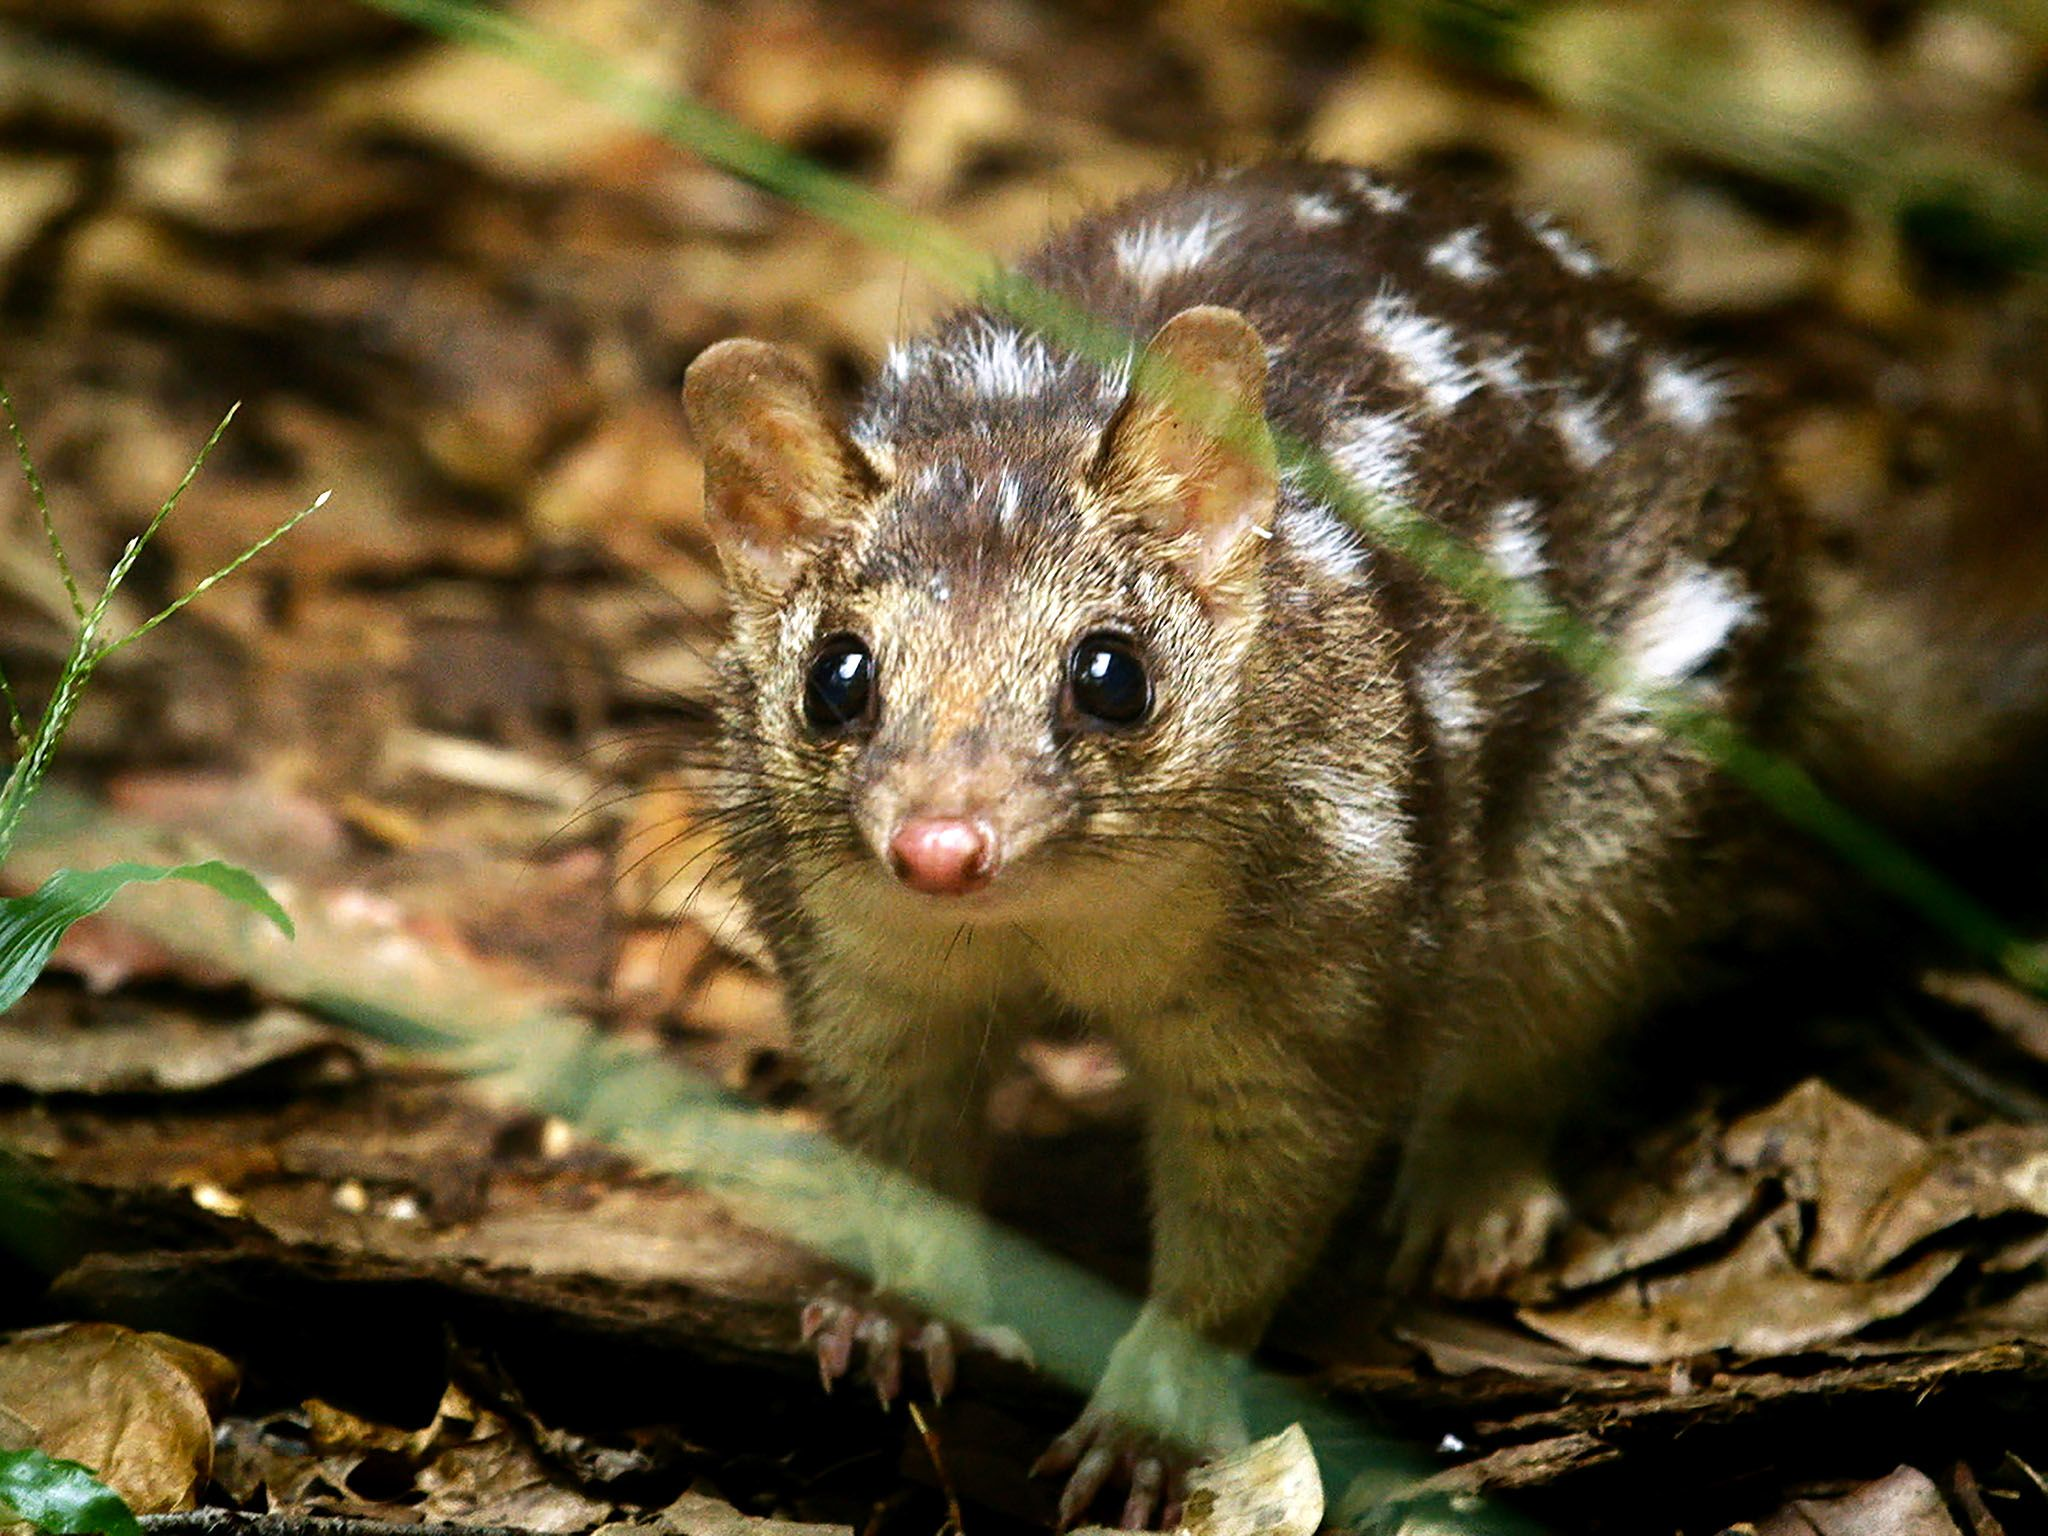 Northern Territory Wildlife Park, Northern Territory Australia: The Northern quoll (Dasyurus... [Photo of the day - مارس 2016]